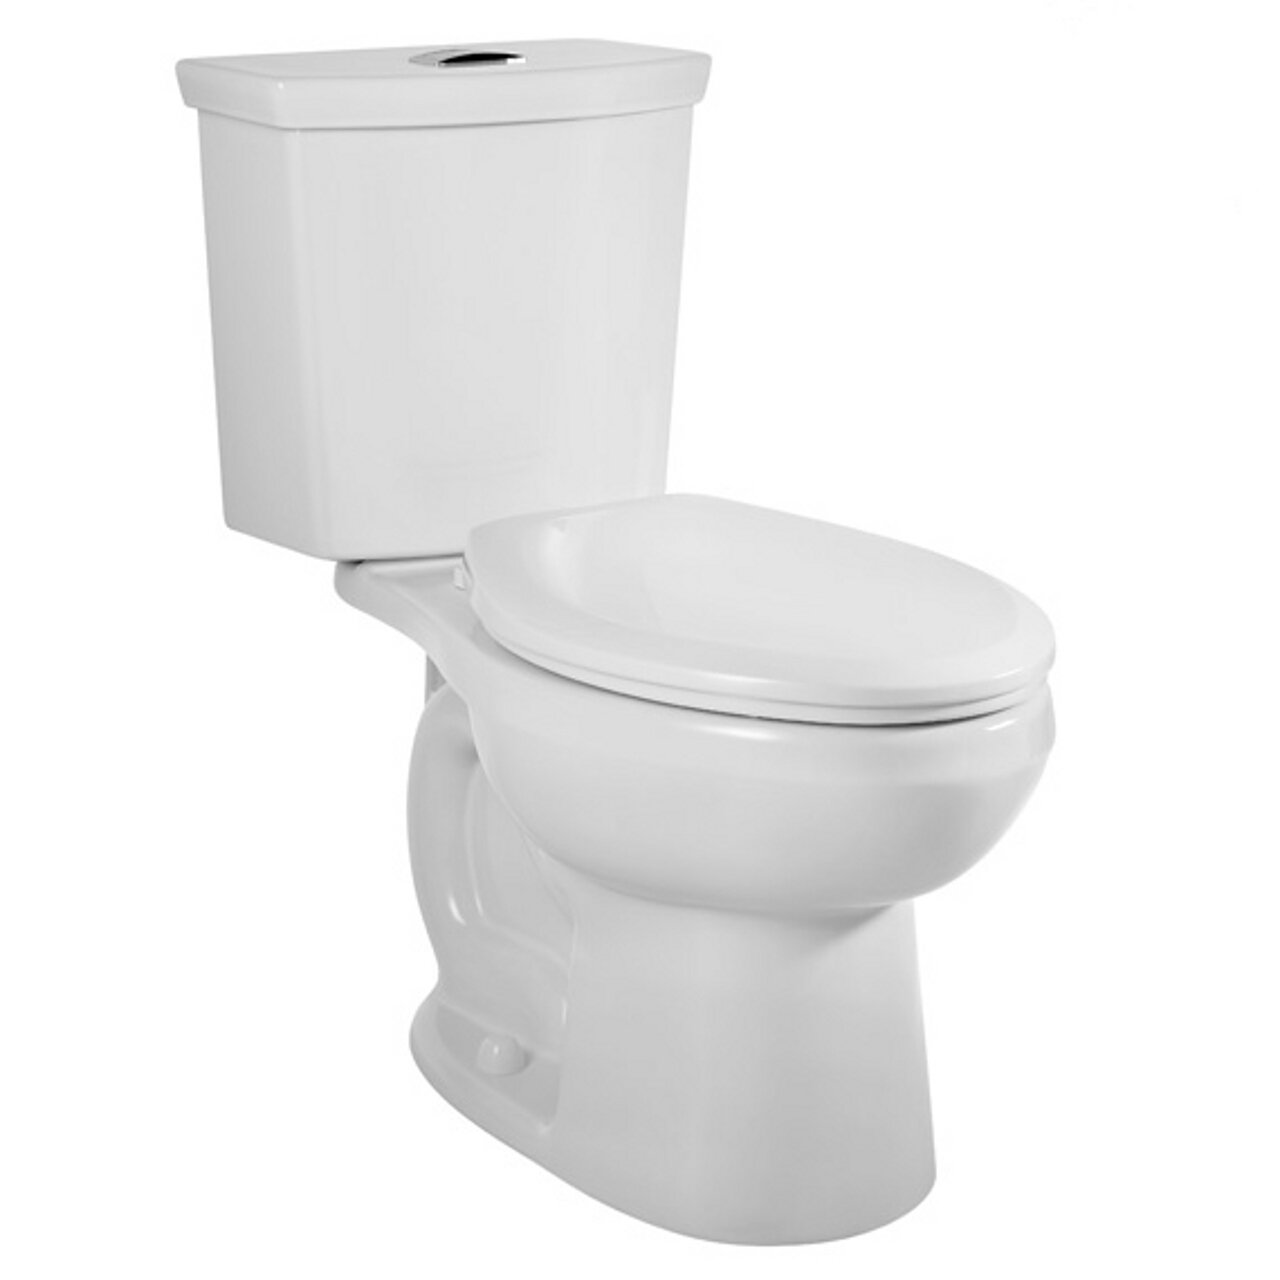 American Standard 2886.516.020 H2Option Dual-Flush Right-Height Elongated Two-Piece Toilet Combo with Liner, White